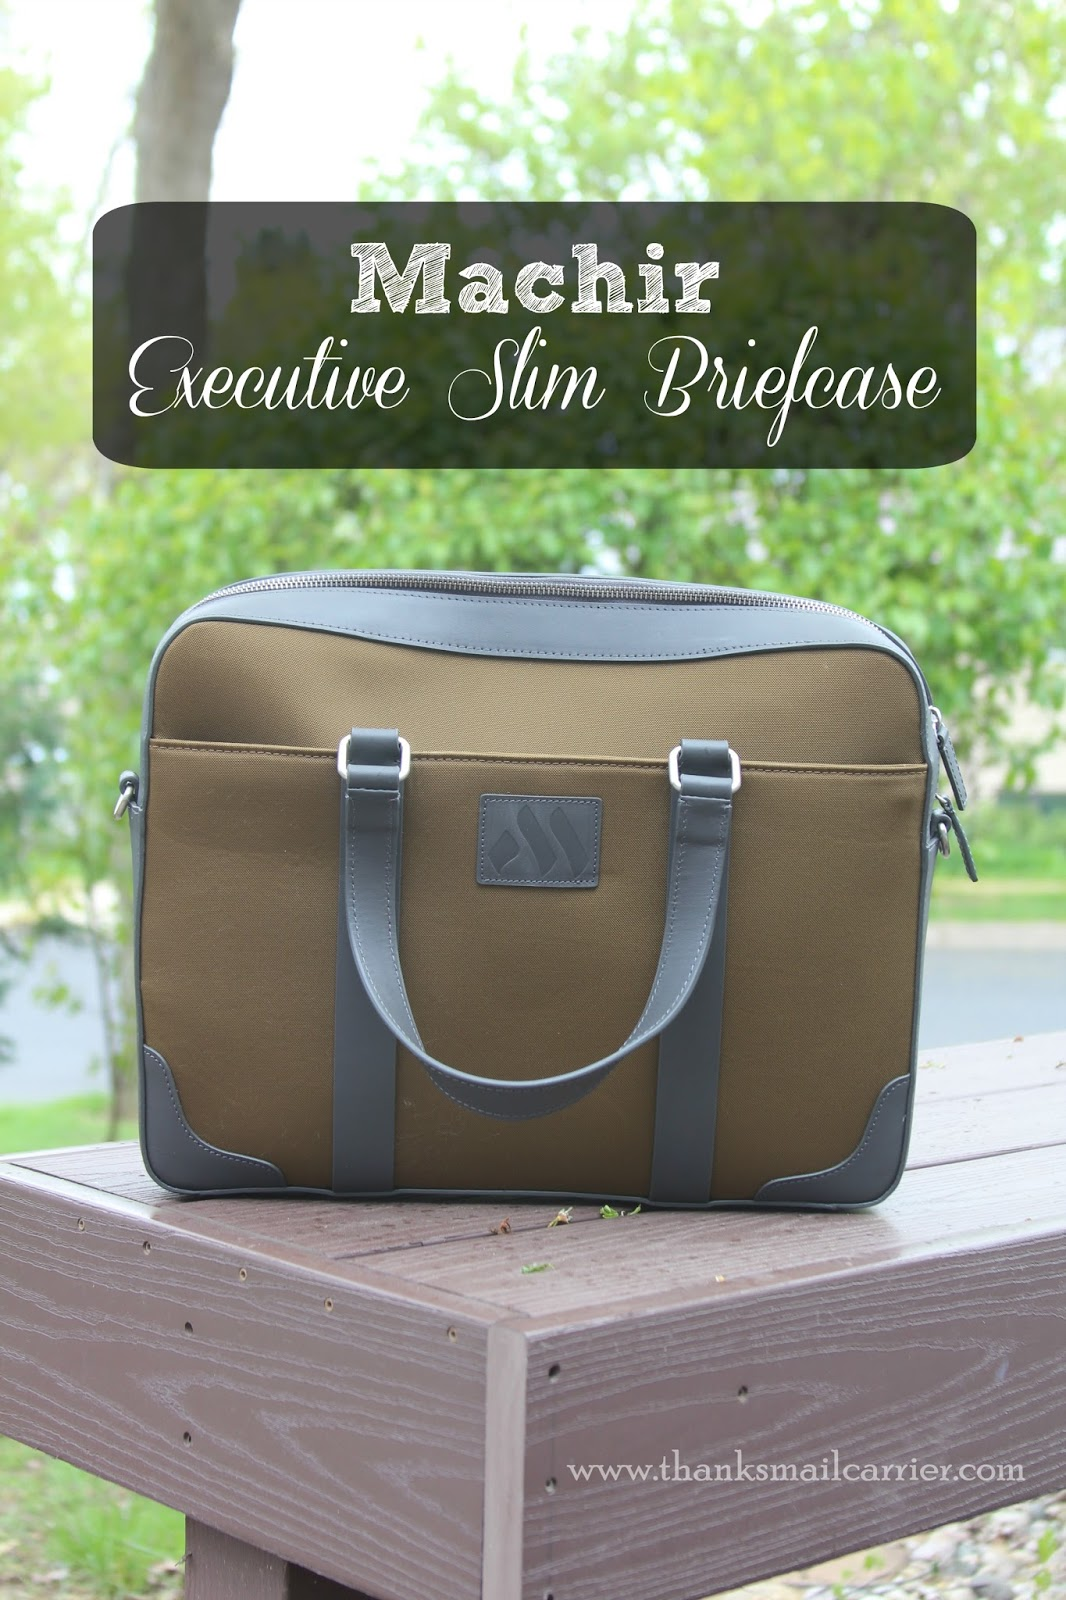 Machir Executive Slim Briefcase